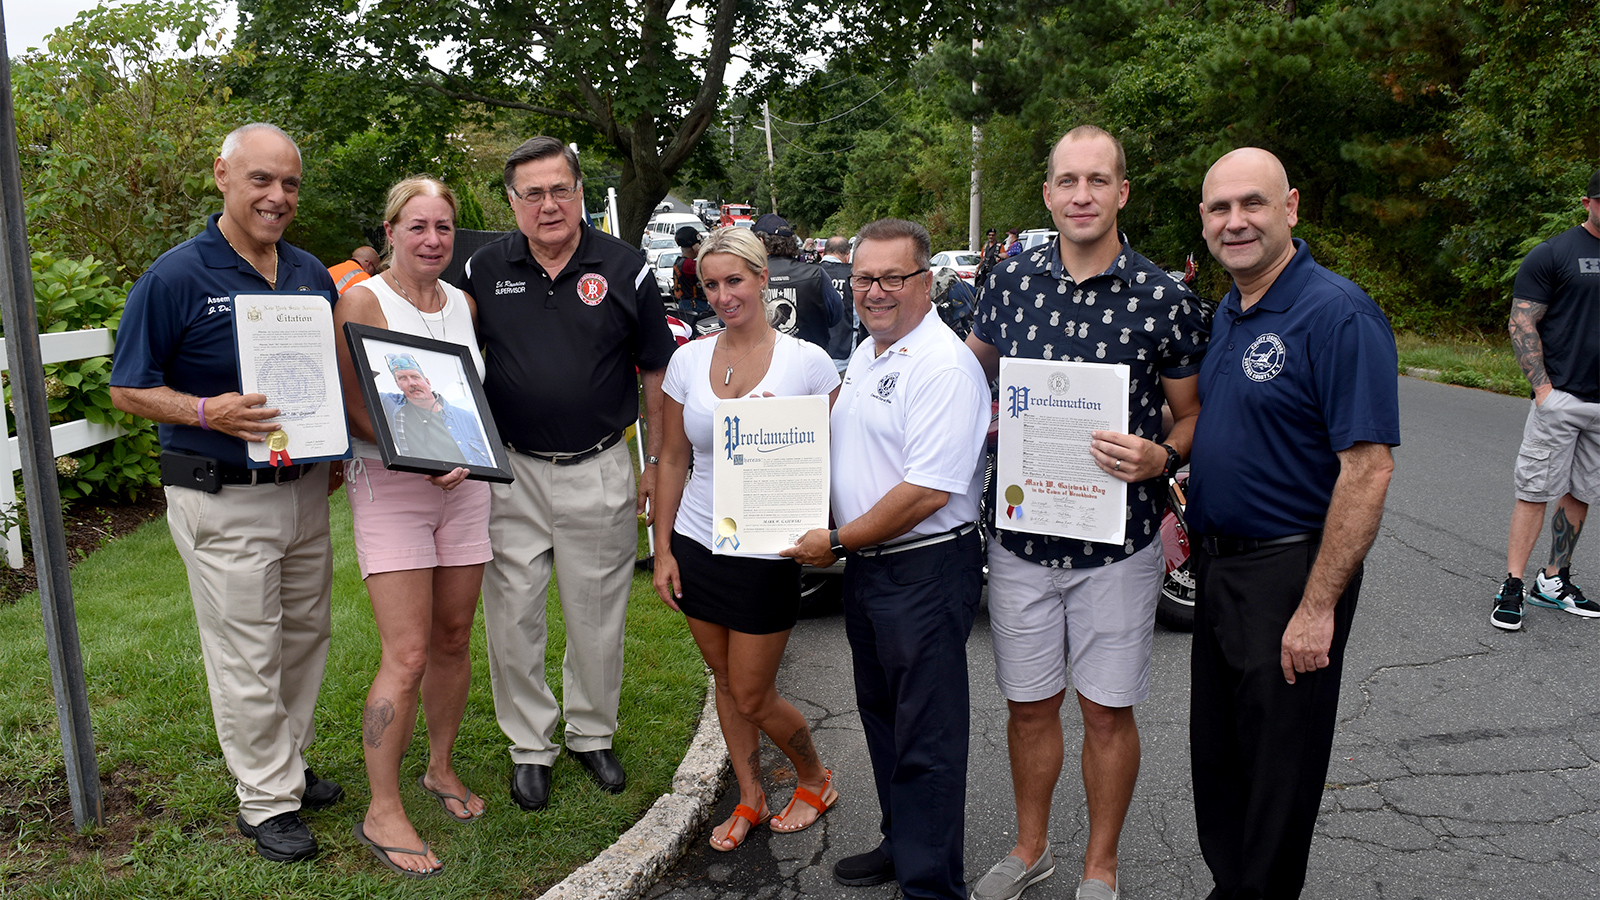 East Patchogue street named in honor of 9/11 first responder